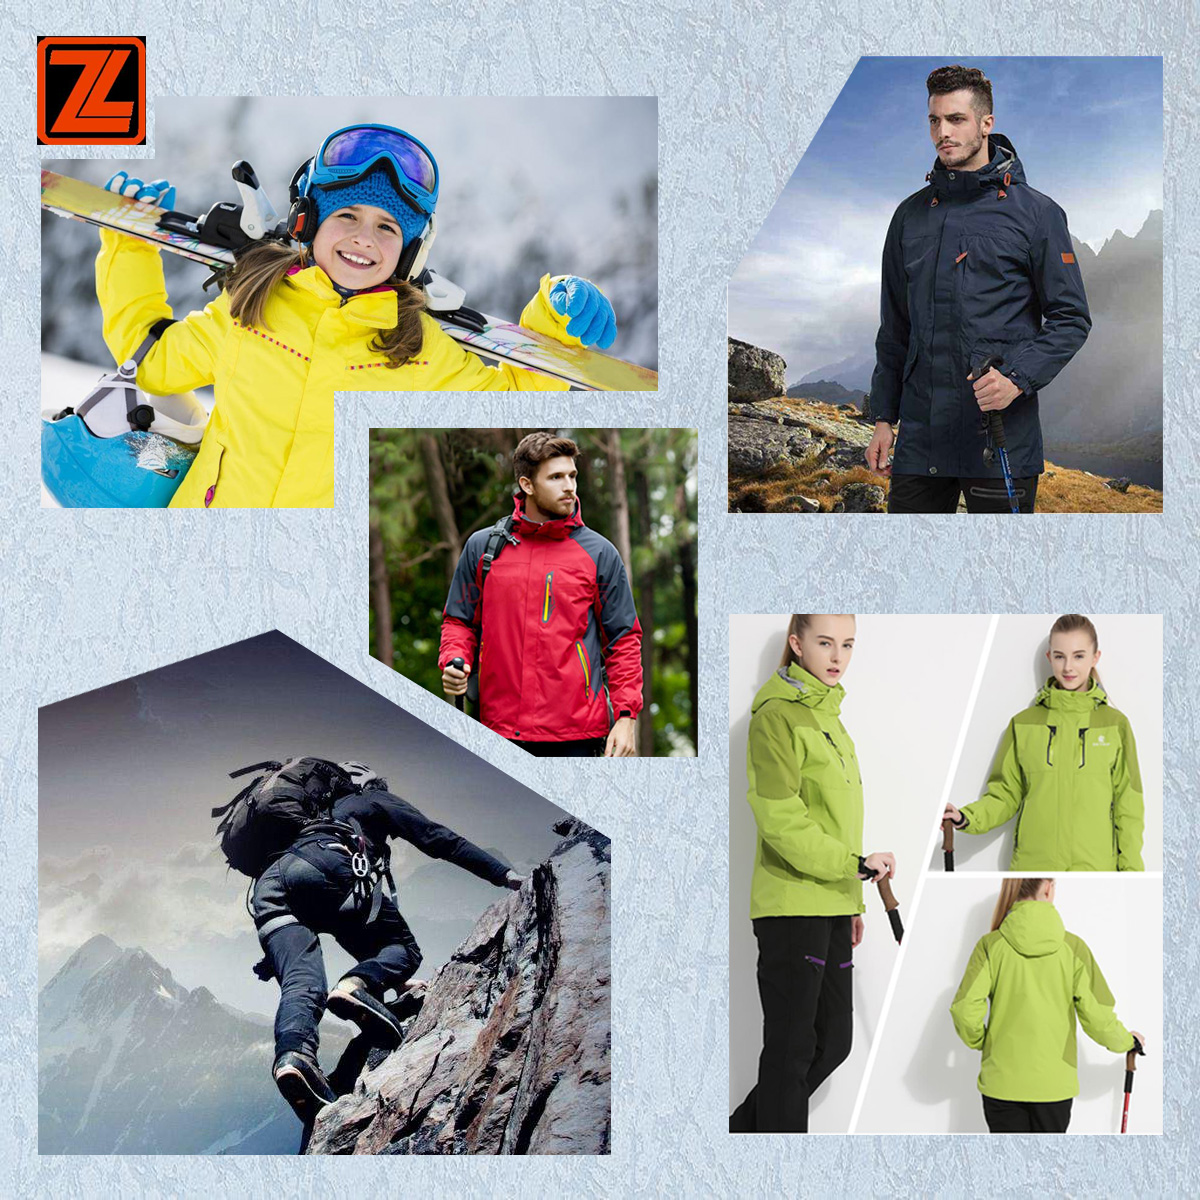 Make to order 250gsm softshell 75D mechanical 4 way stretch fabric with TPU membrane bond mesh fabric for jacket